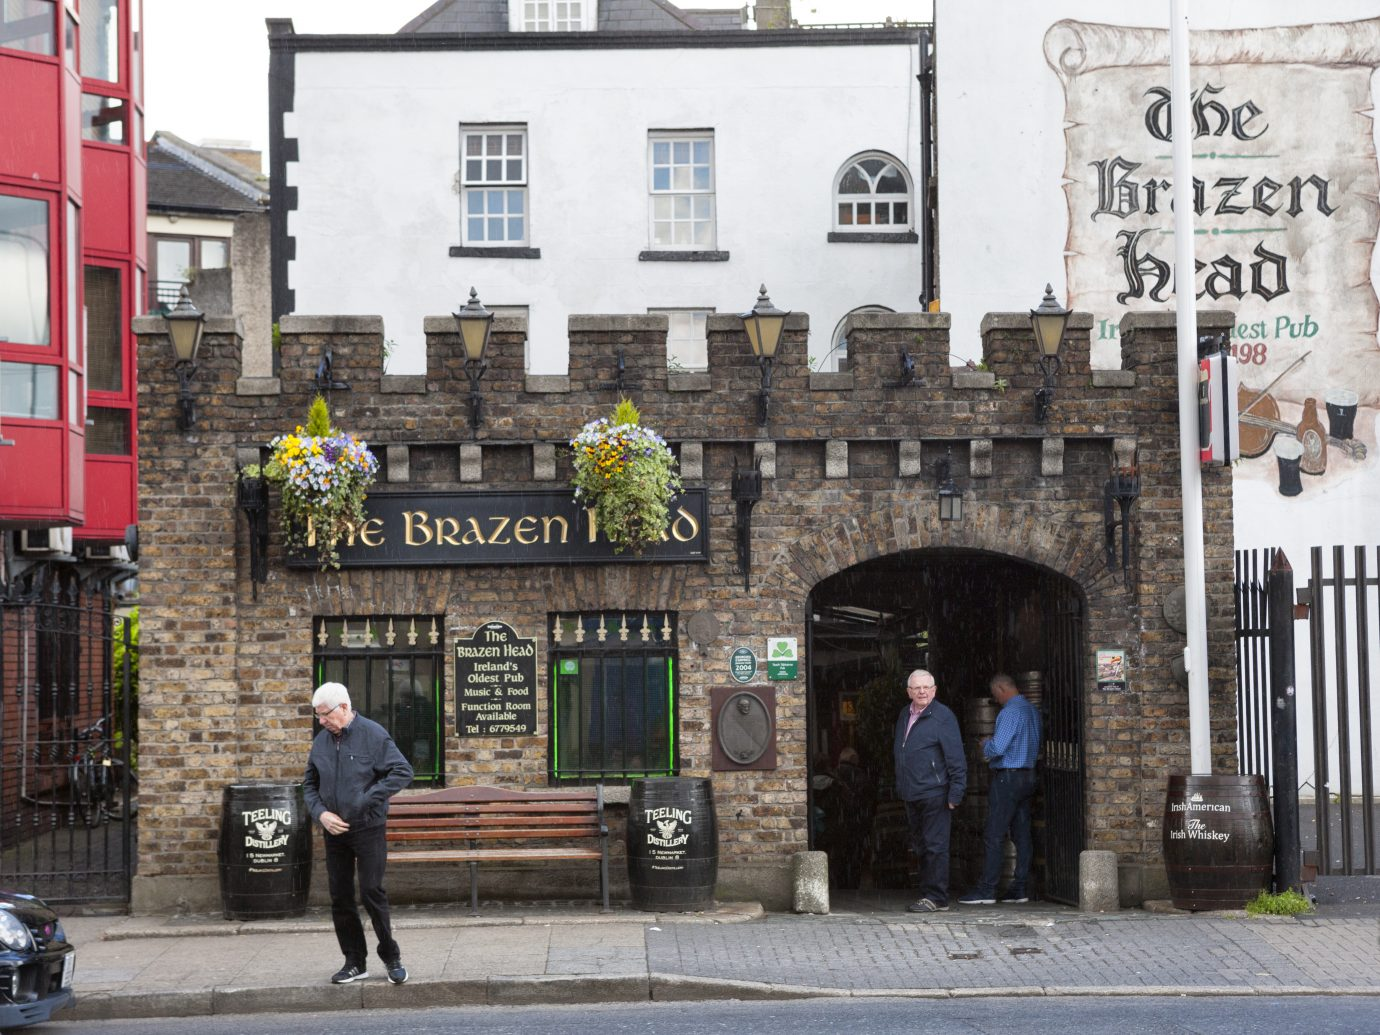 People entering and exiting The Brazen Head pub in downtown Dublin the capital of Ireland. The Brazen Head is billed as Irelands oldest pub and records go back to 1198.